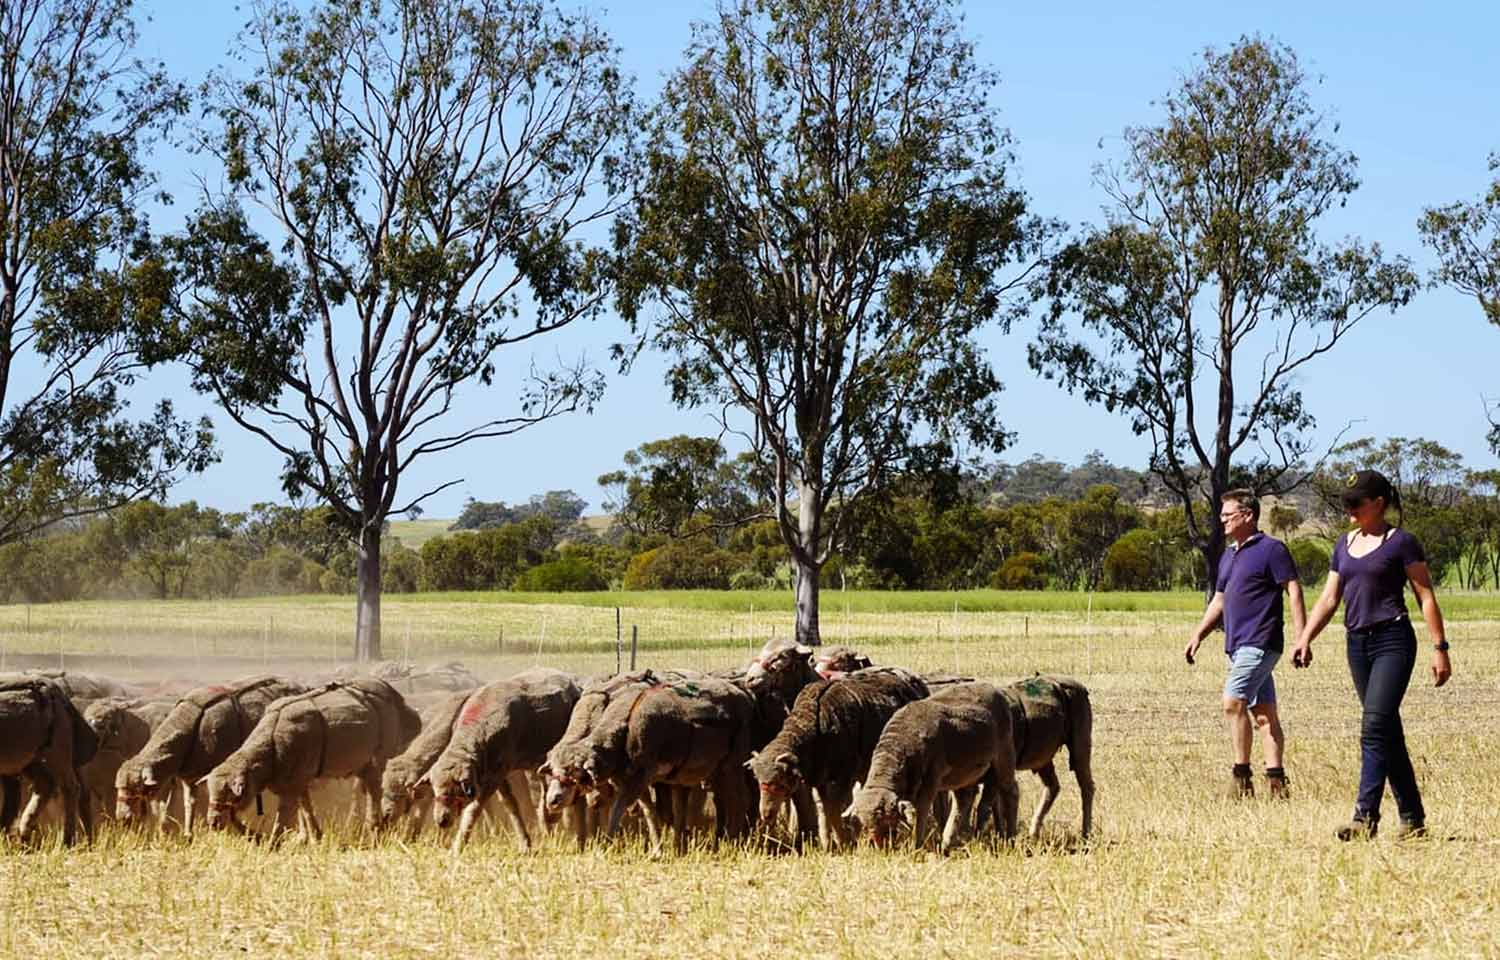 Using smart tags to monitor sheep behaviour